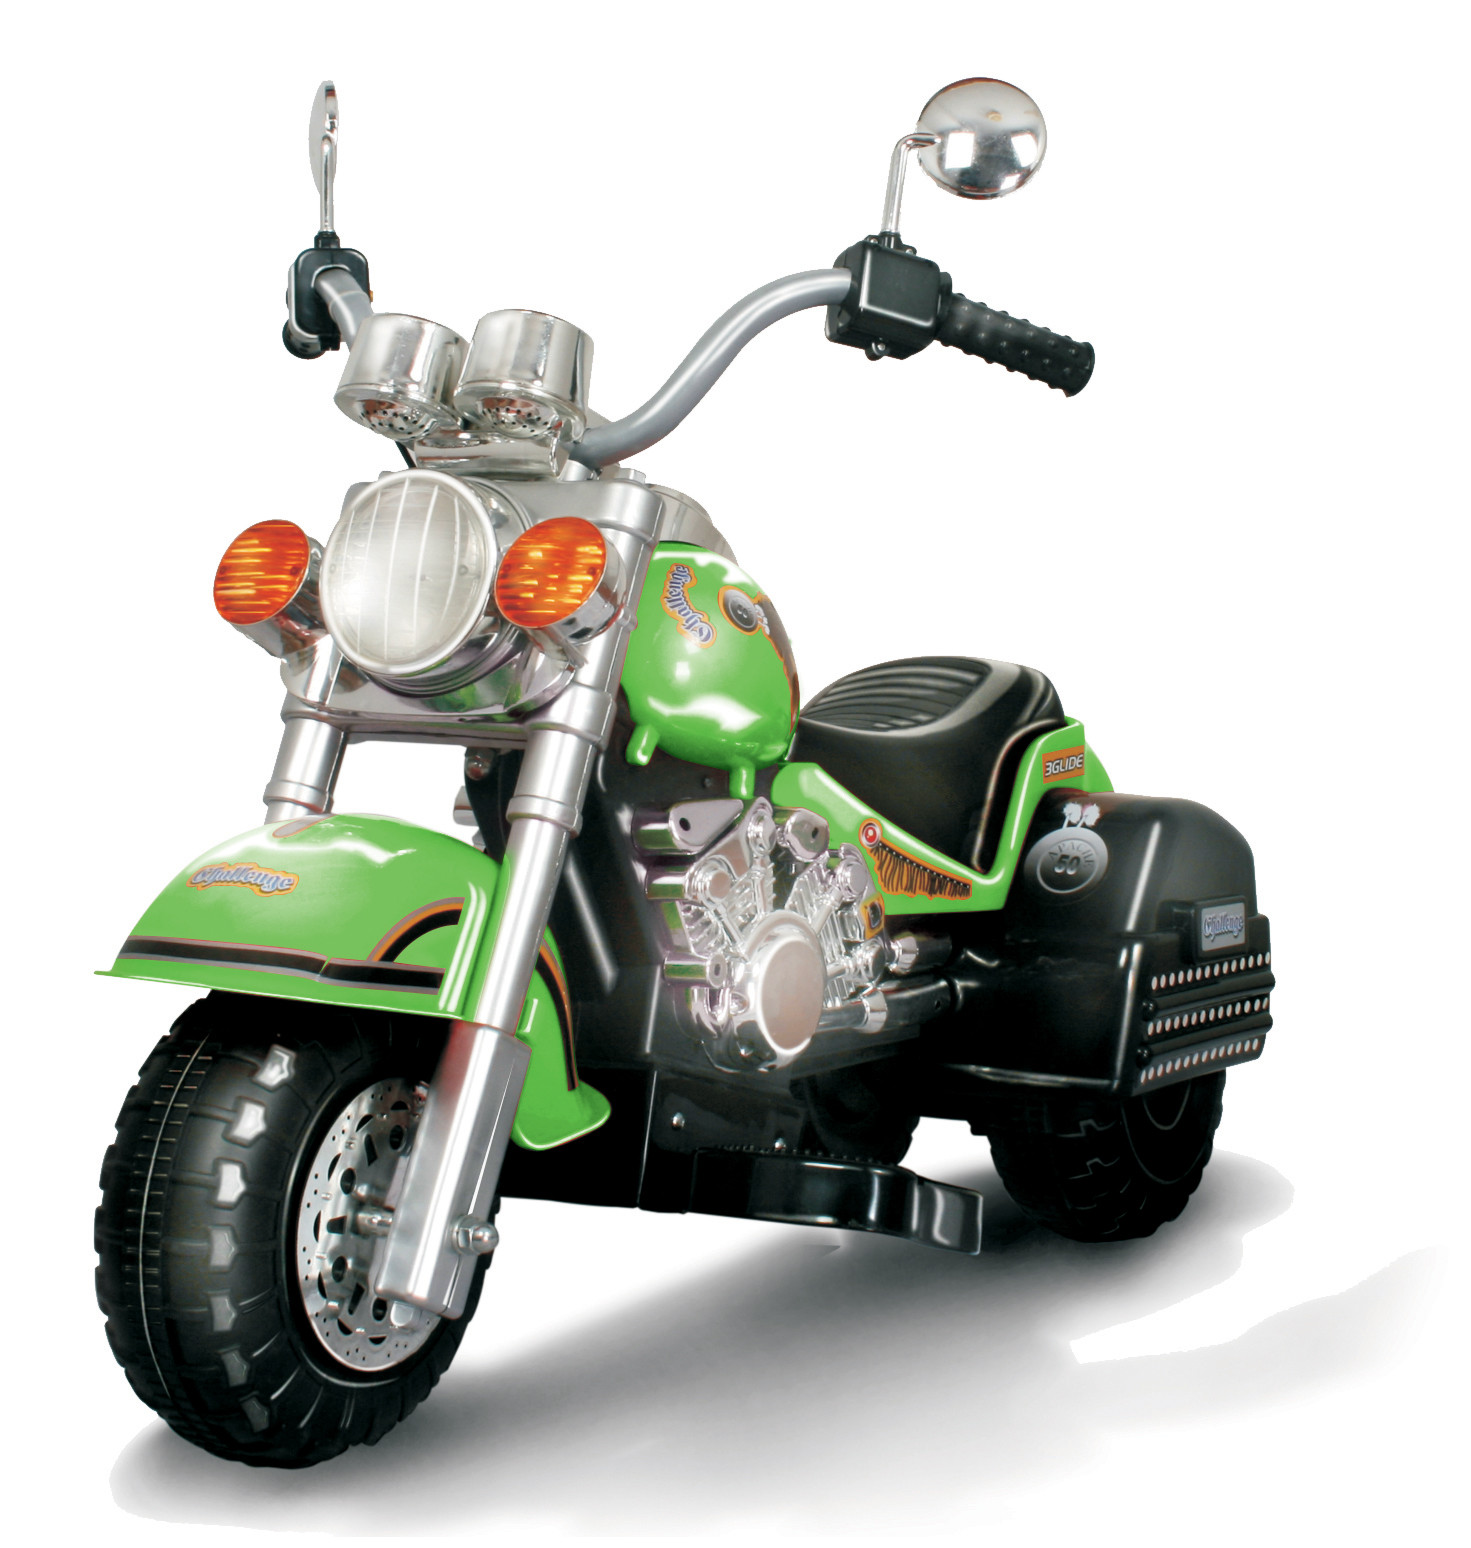 Harley Style Chopper Style Limited Edition Motorcycle Green by